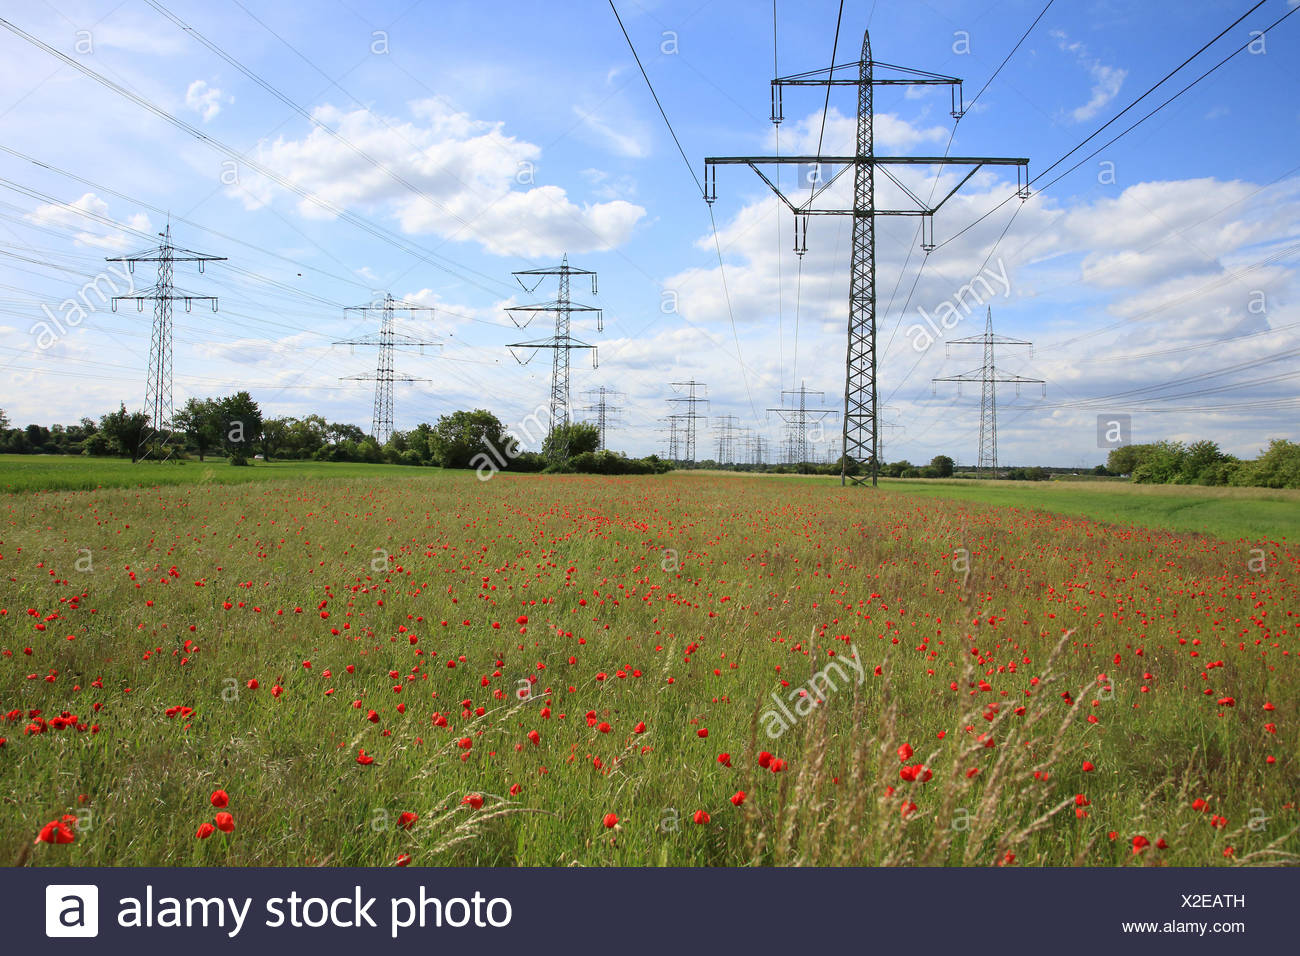 Poppy field with high-tension power lines Papaver rhoeas - Stock Image